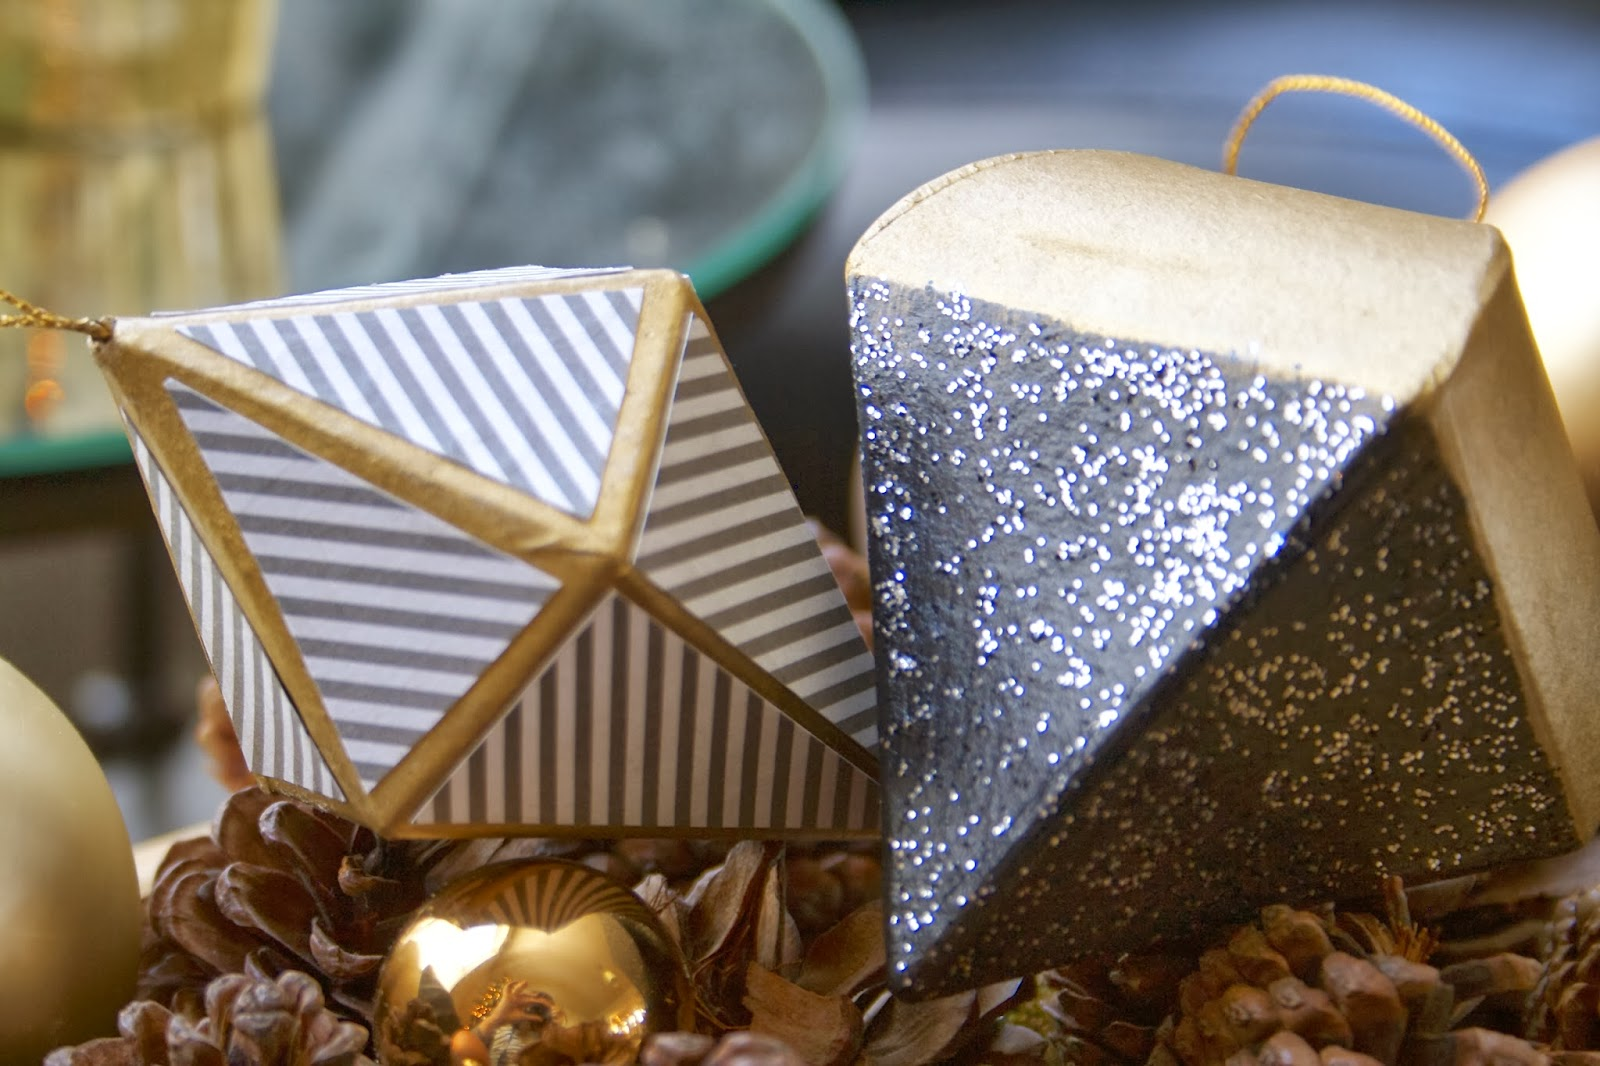 Paper mache ornaments - I Bought My Paper Mache Ornaments At Michaels Craft Store For Less Than 50 Cents Each The Paint Glitter Paint Rub N Buff And Paper Totaled Around Around